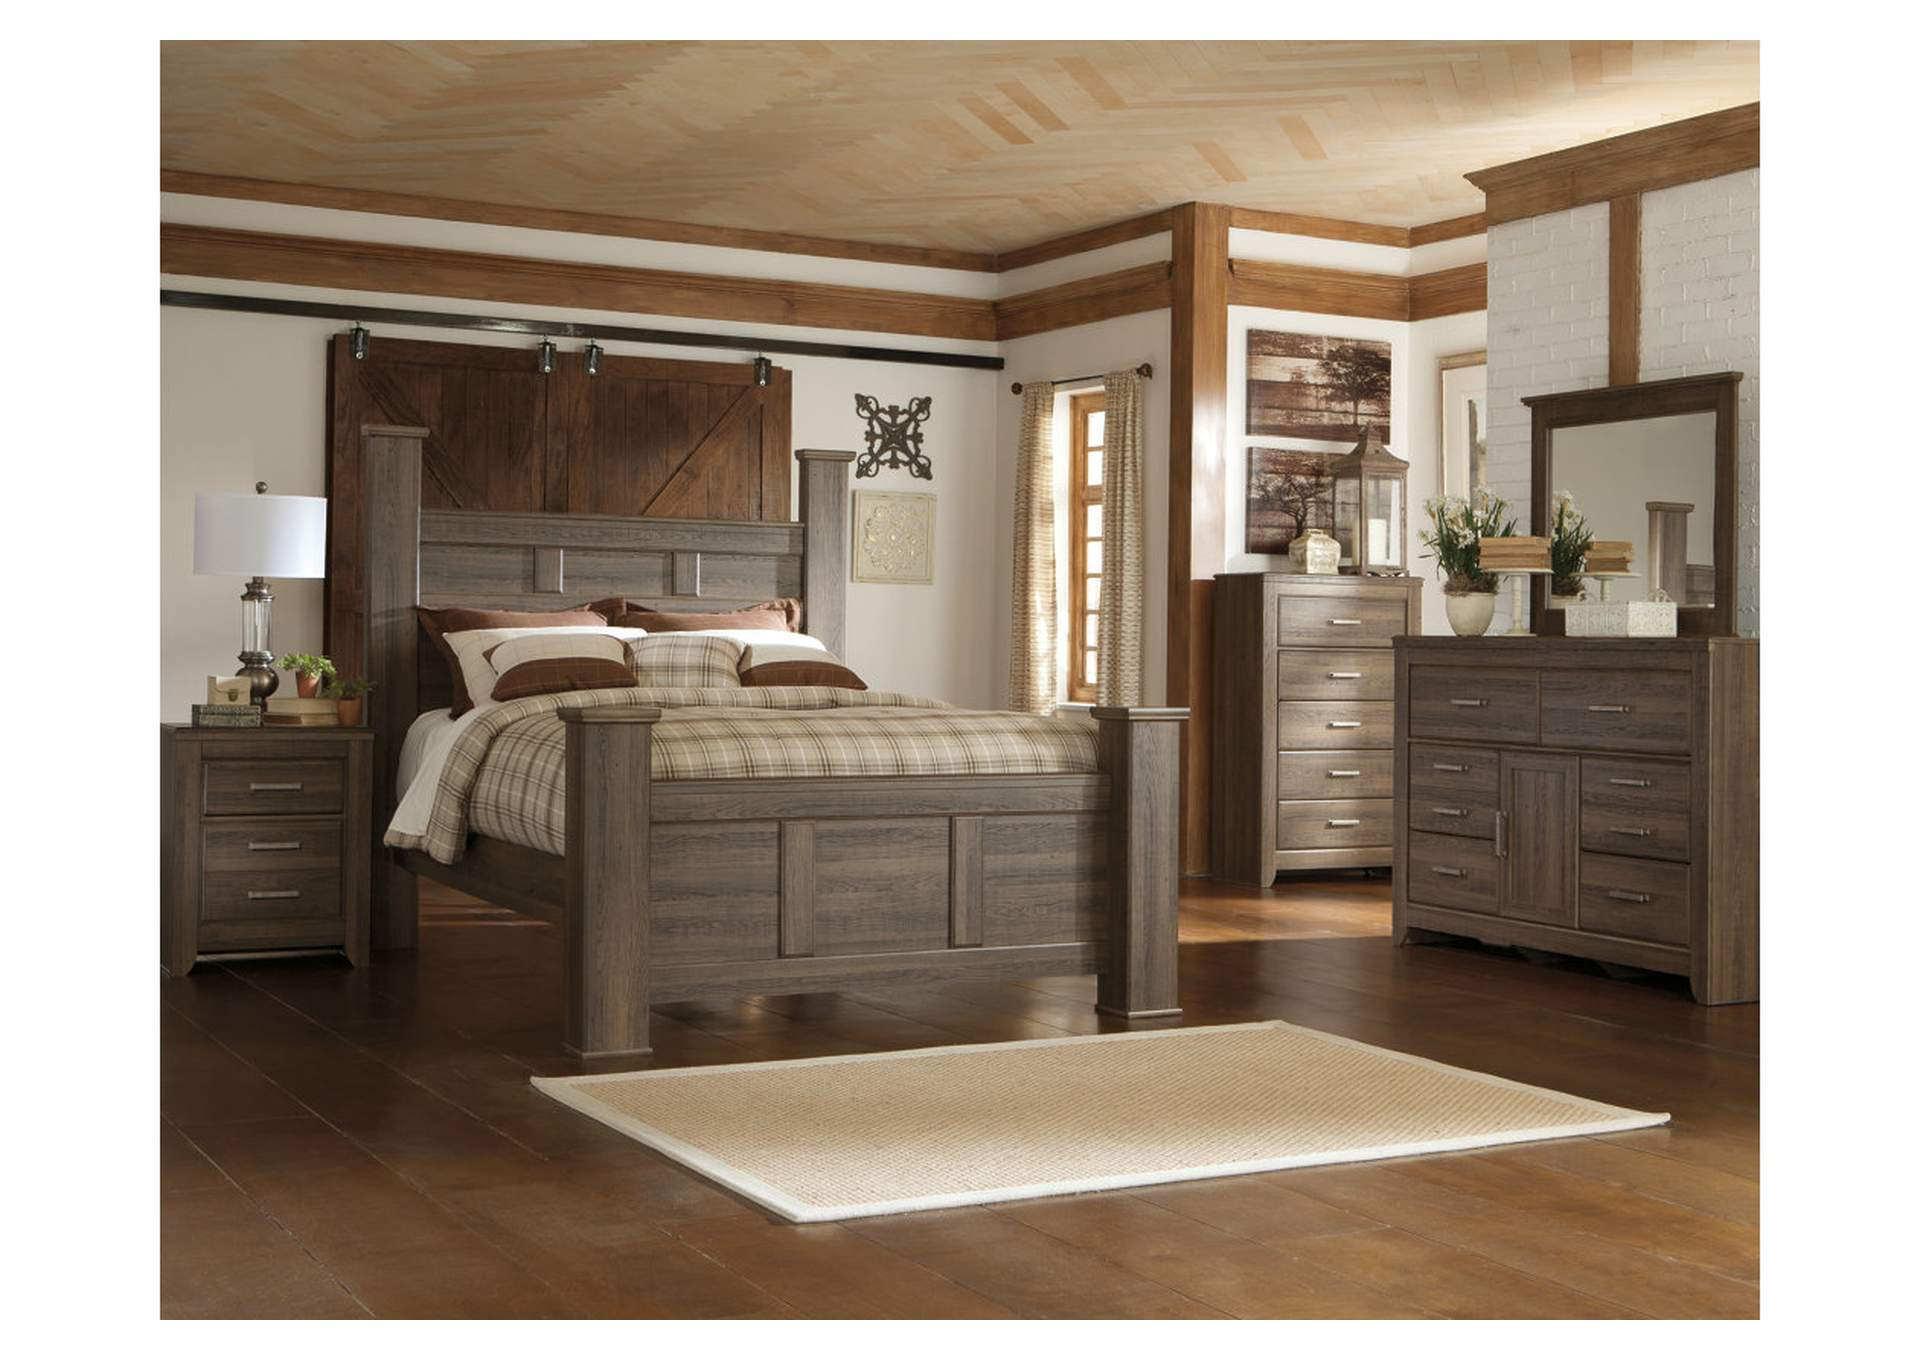 Juararo Queen Poster Bed w/Dresser, Mirror & Drawer Chest,Signature Design By Ashley